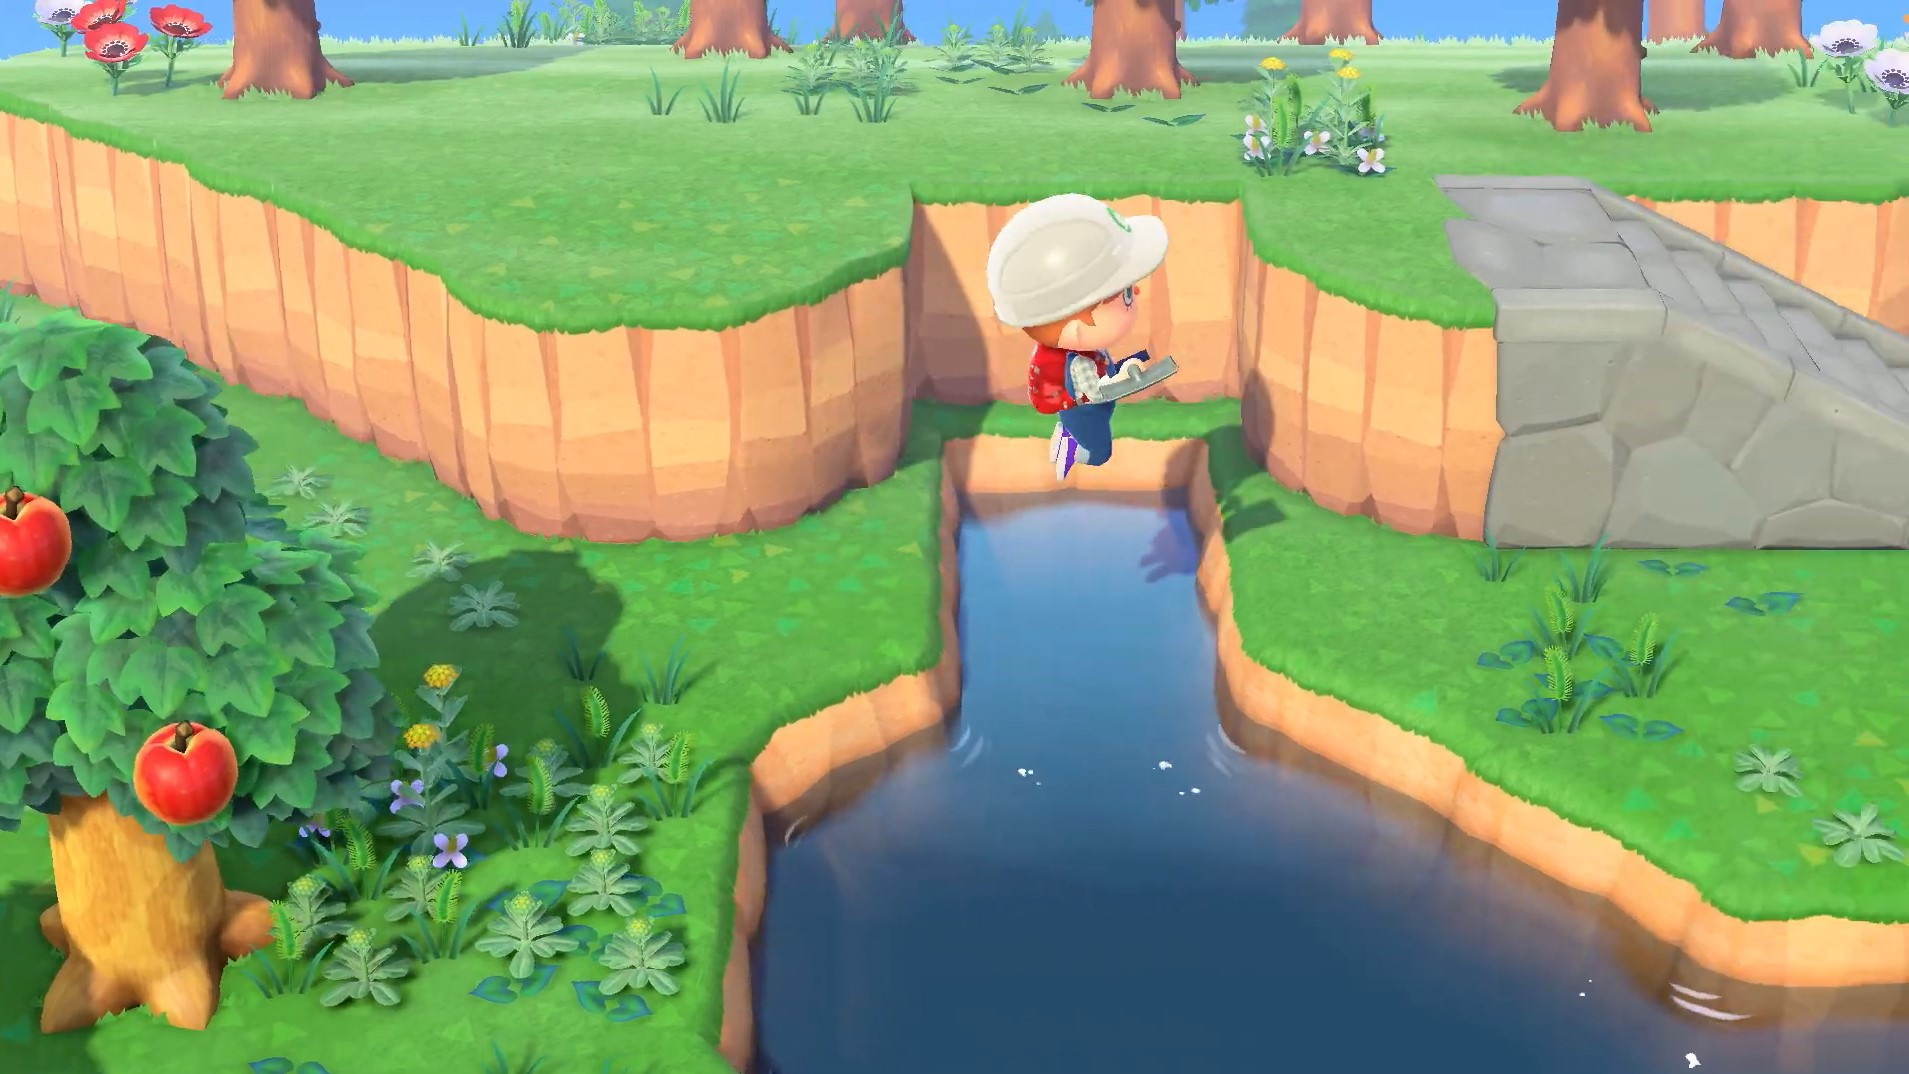 Remodel The Landscape In Animal Crossing: New Horizons To ...